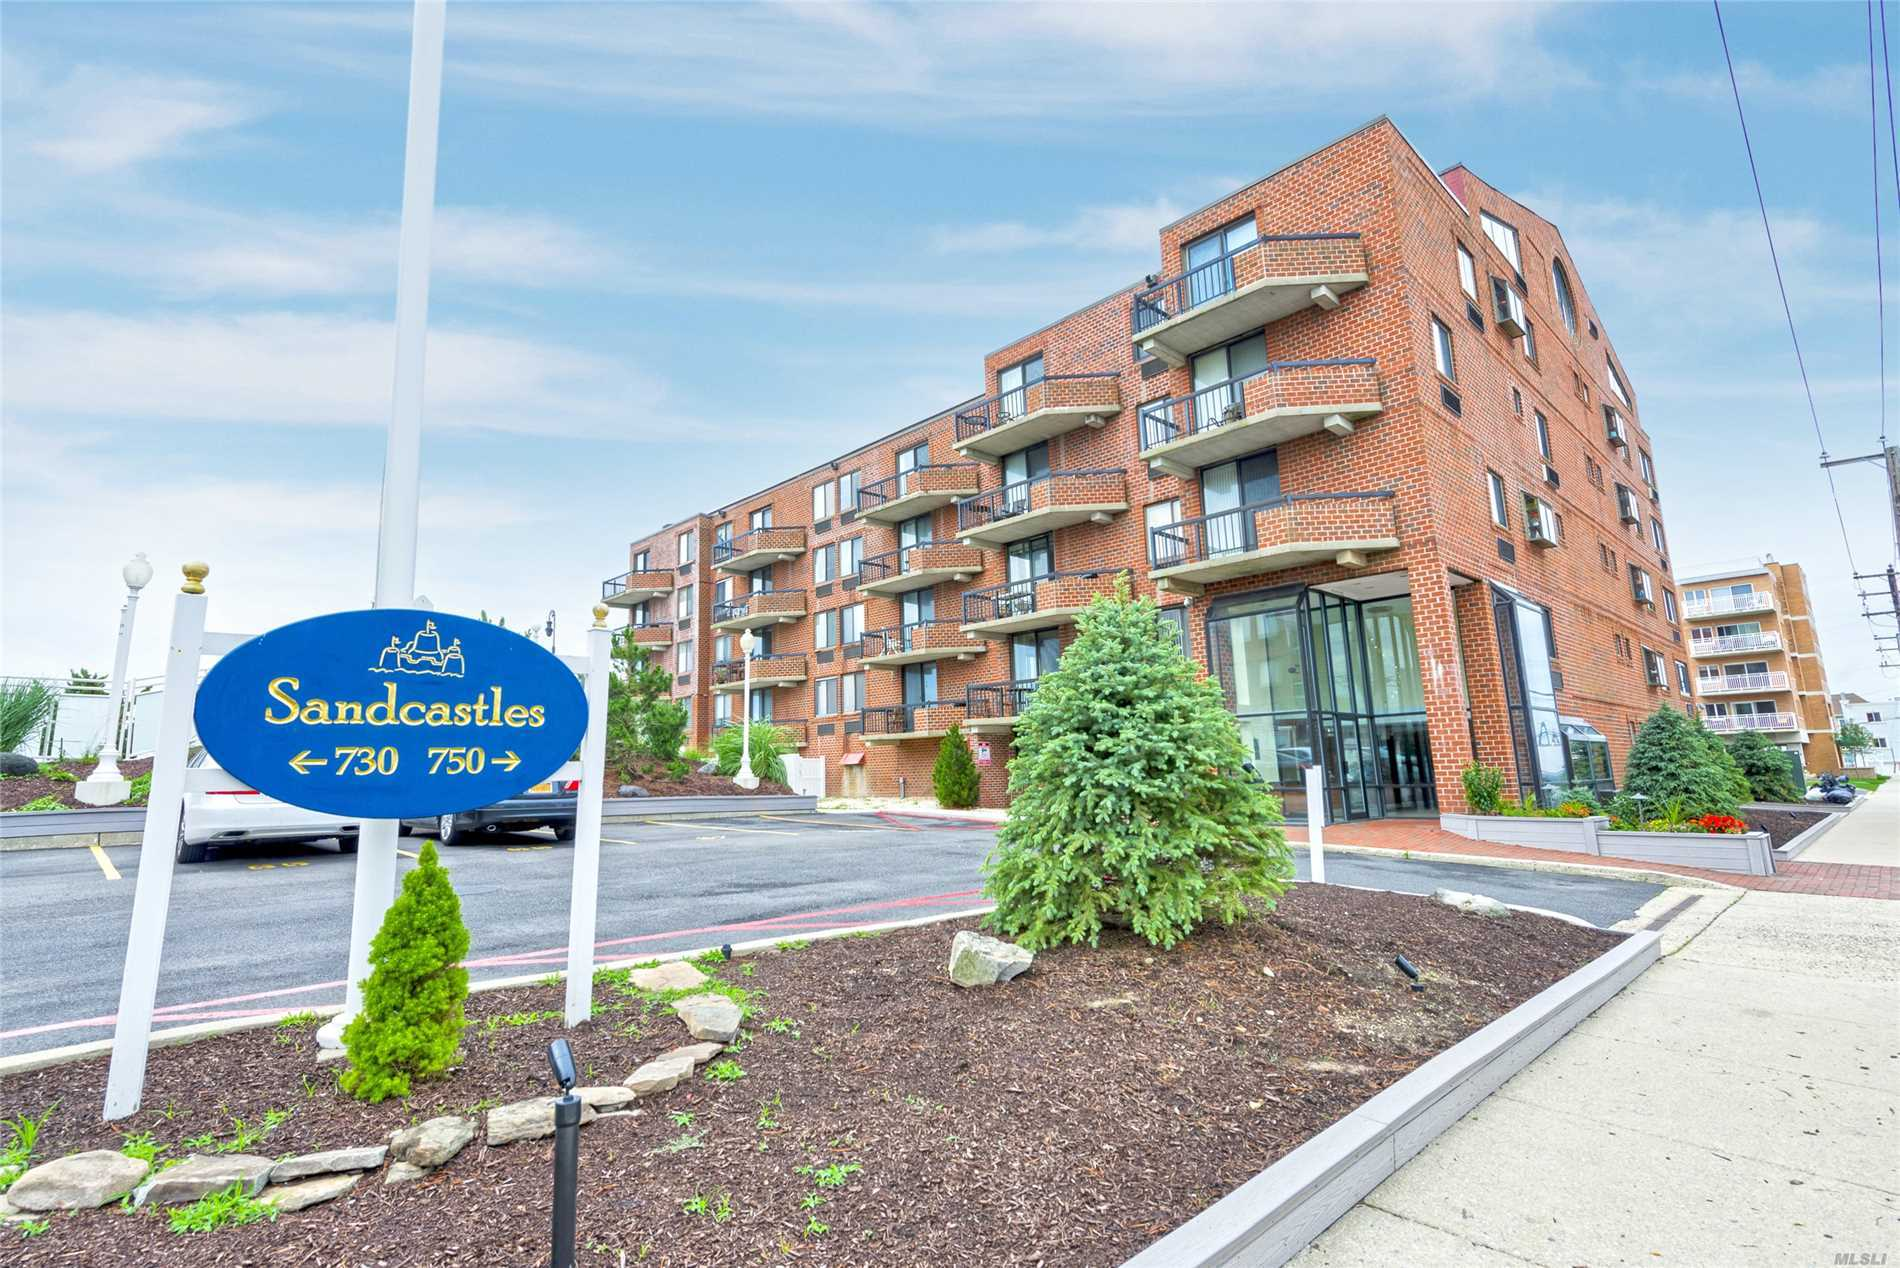 Property for sale at 750 W Broadway # 3P, Long Beach NY 11561, Long Beach,  New York 11561